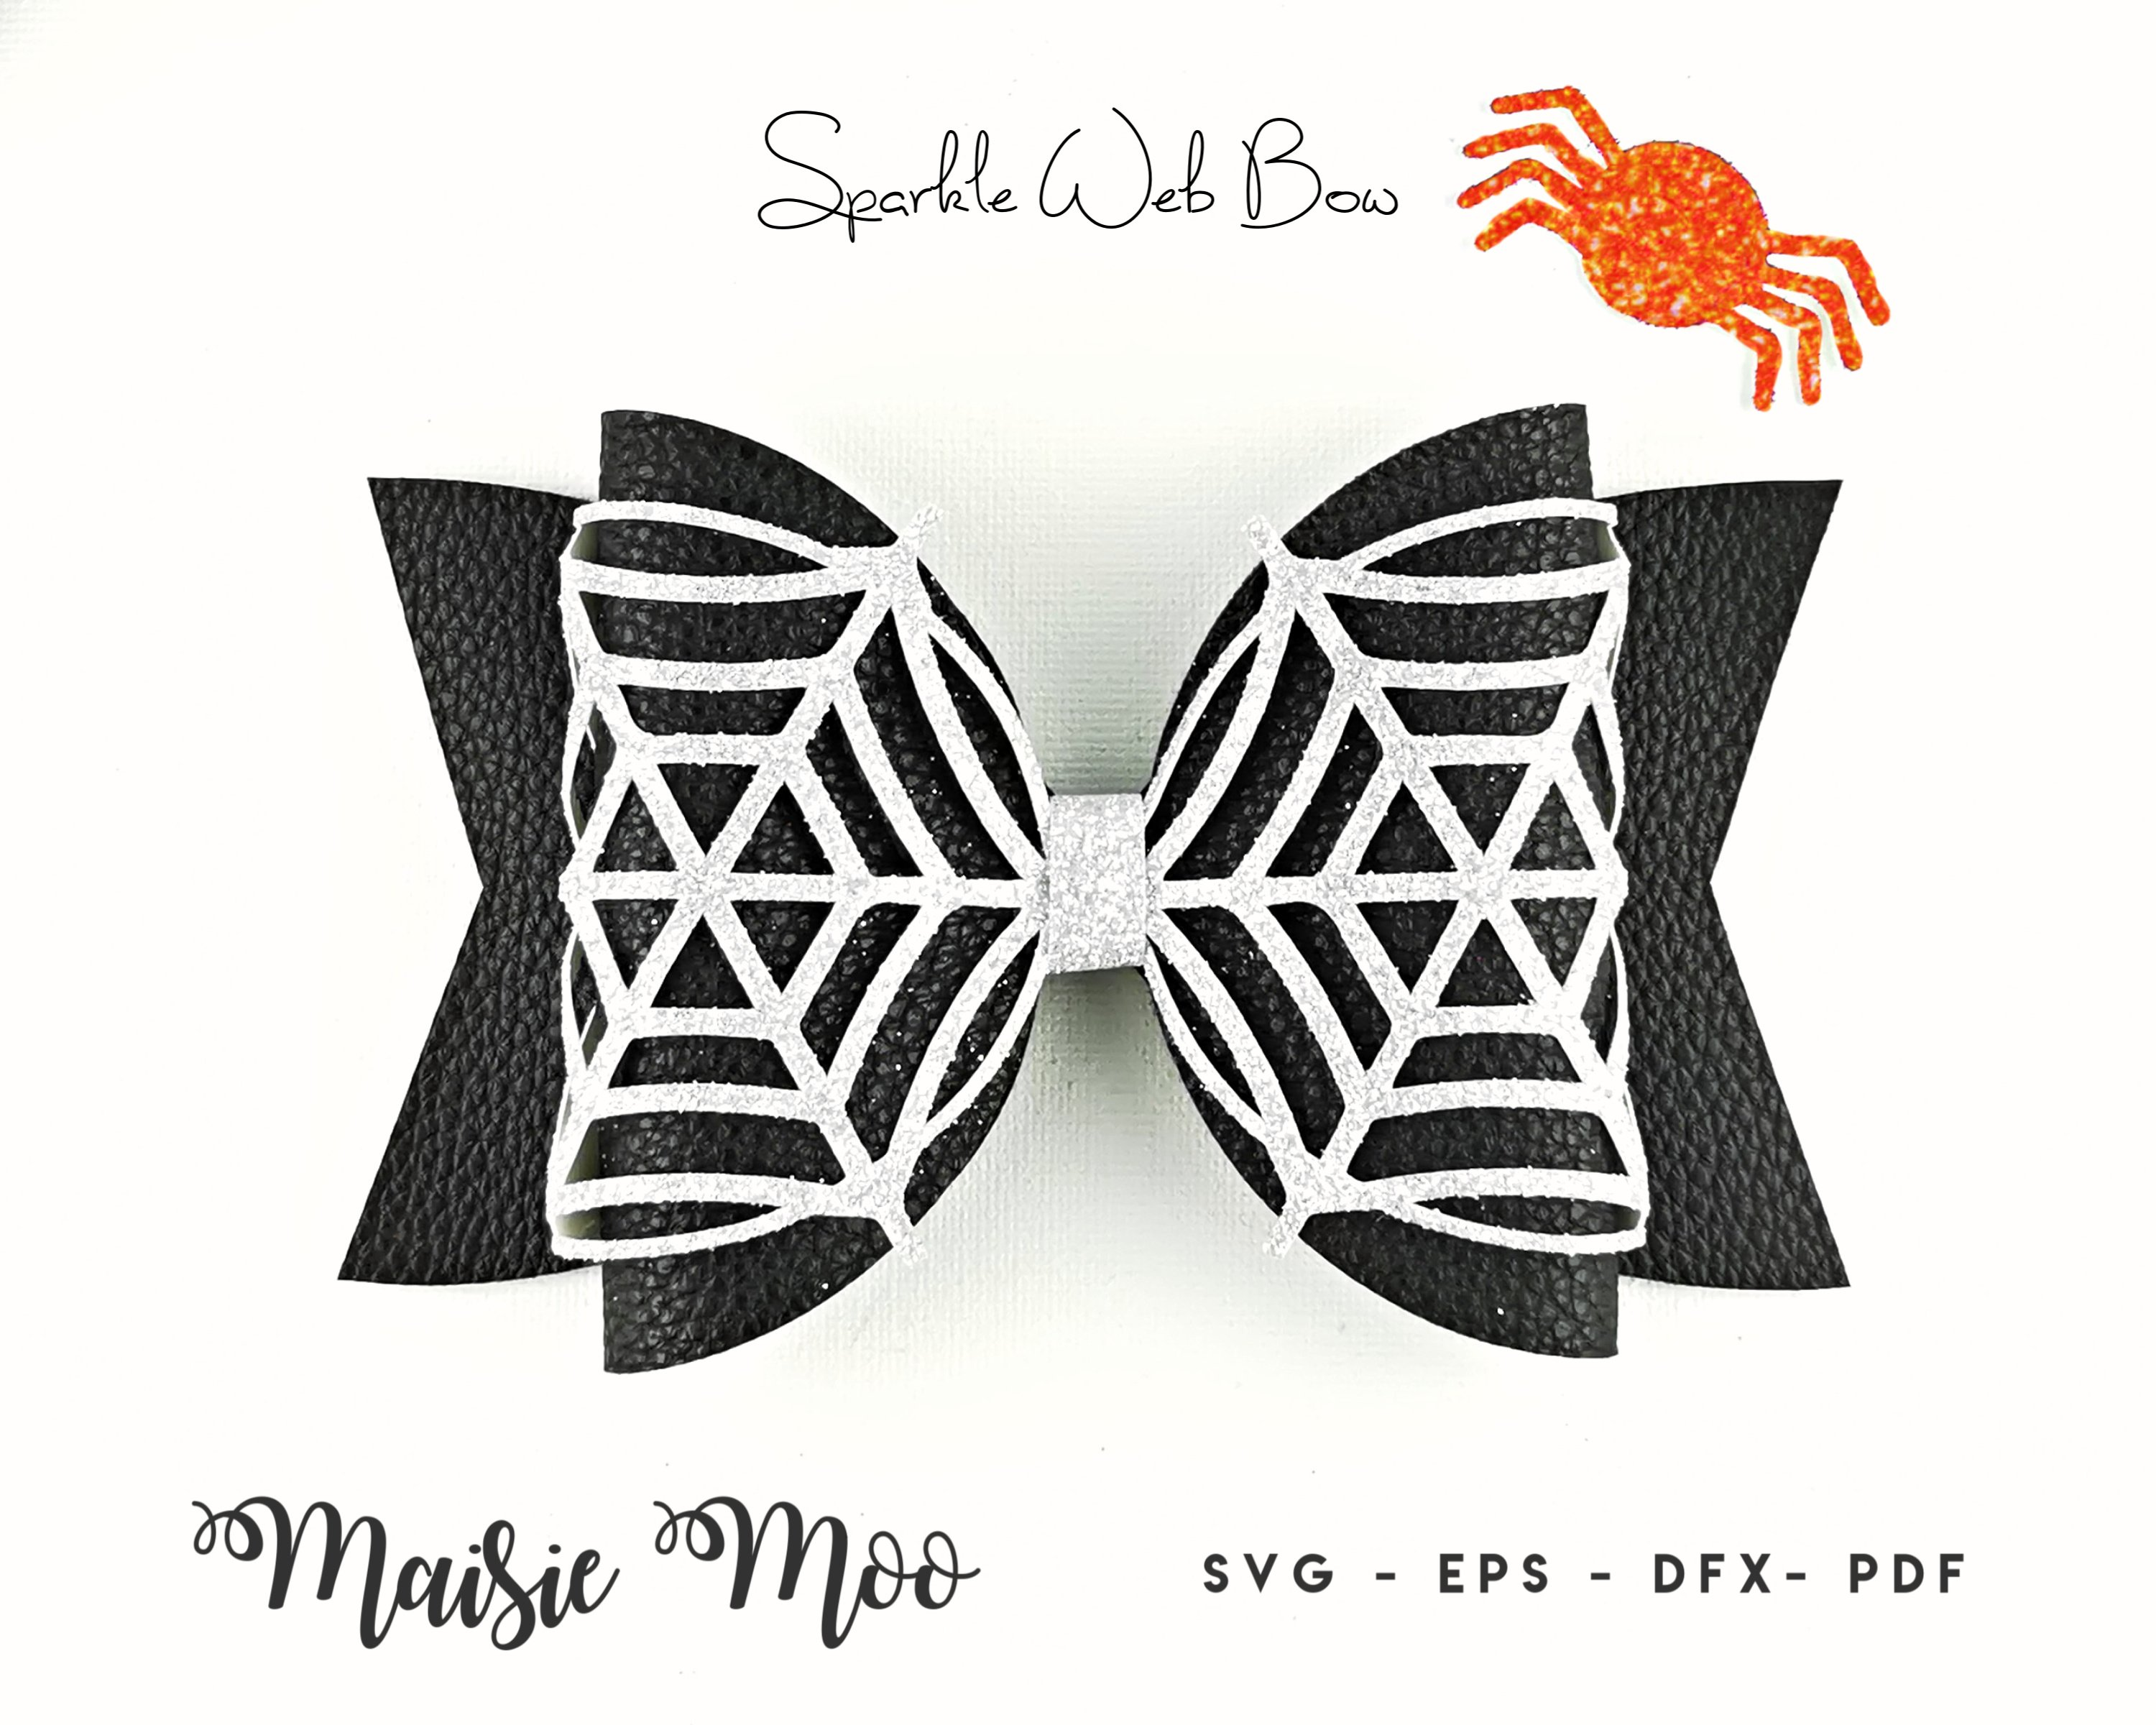 Spiderweb Bow Template SVG, Lace Bow SVG, Felt Bow PDF, example image 2